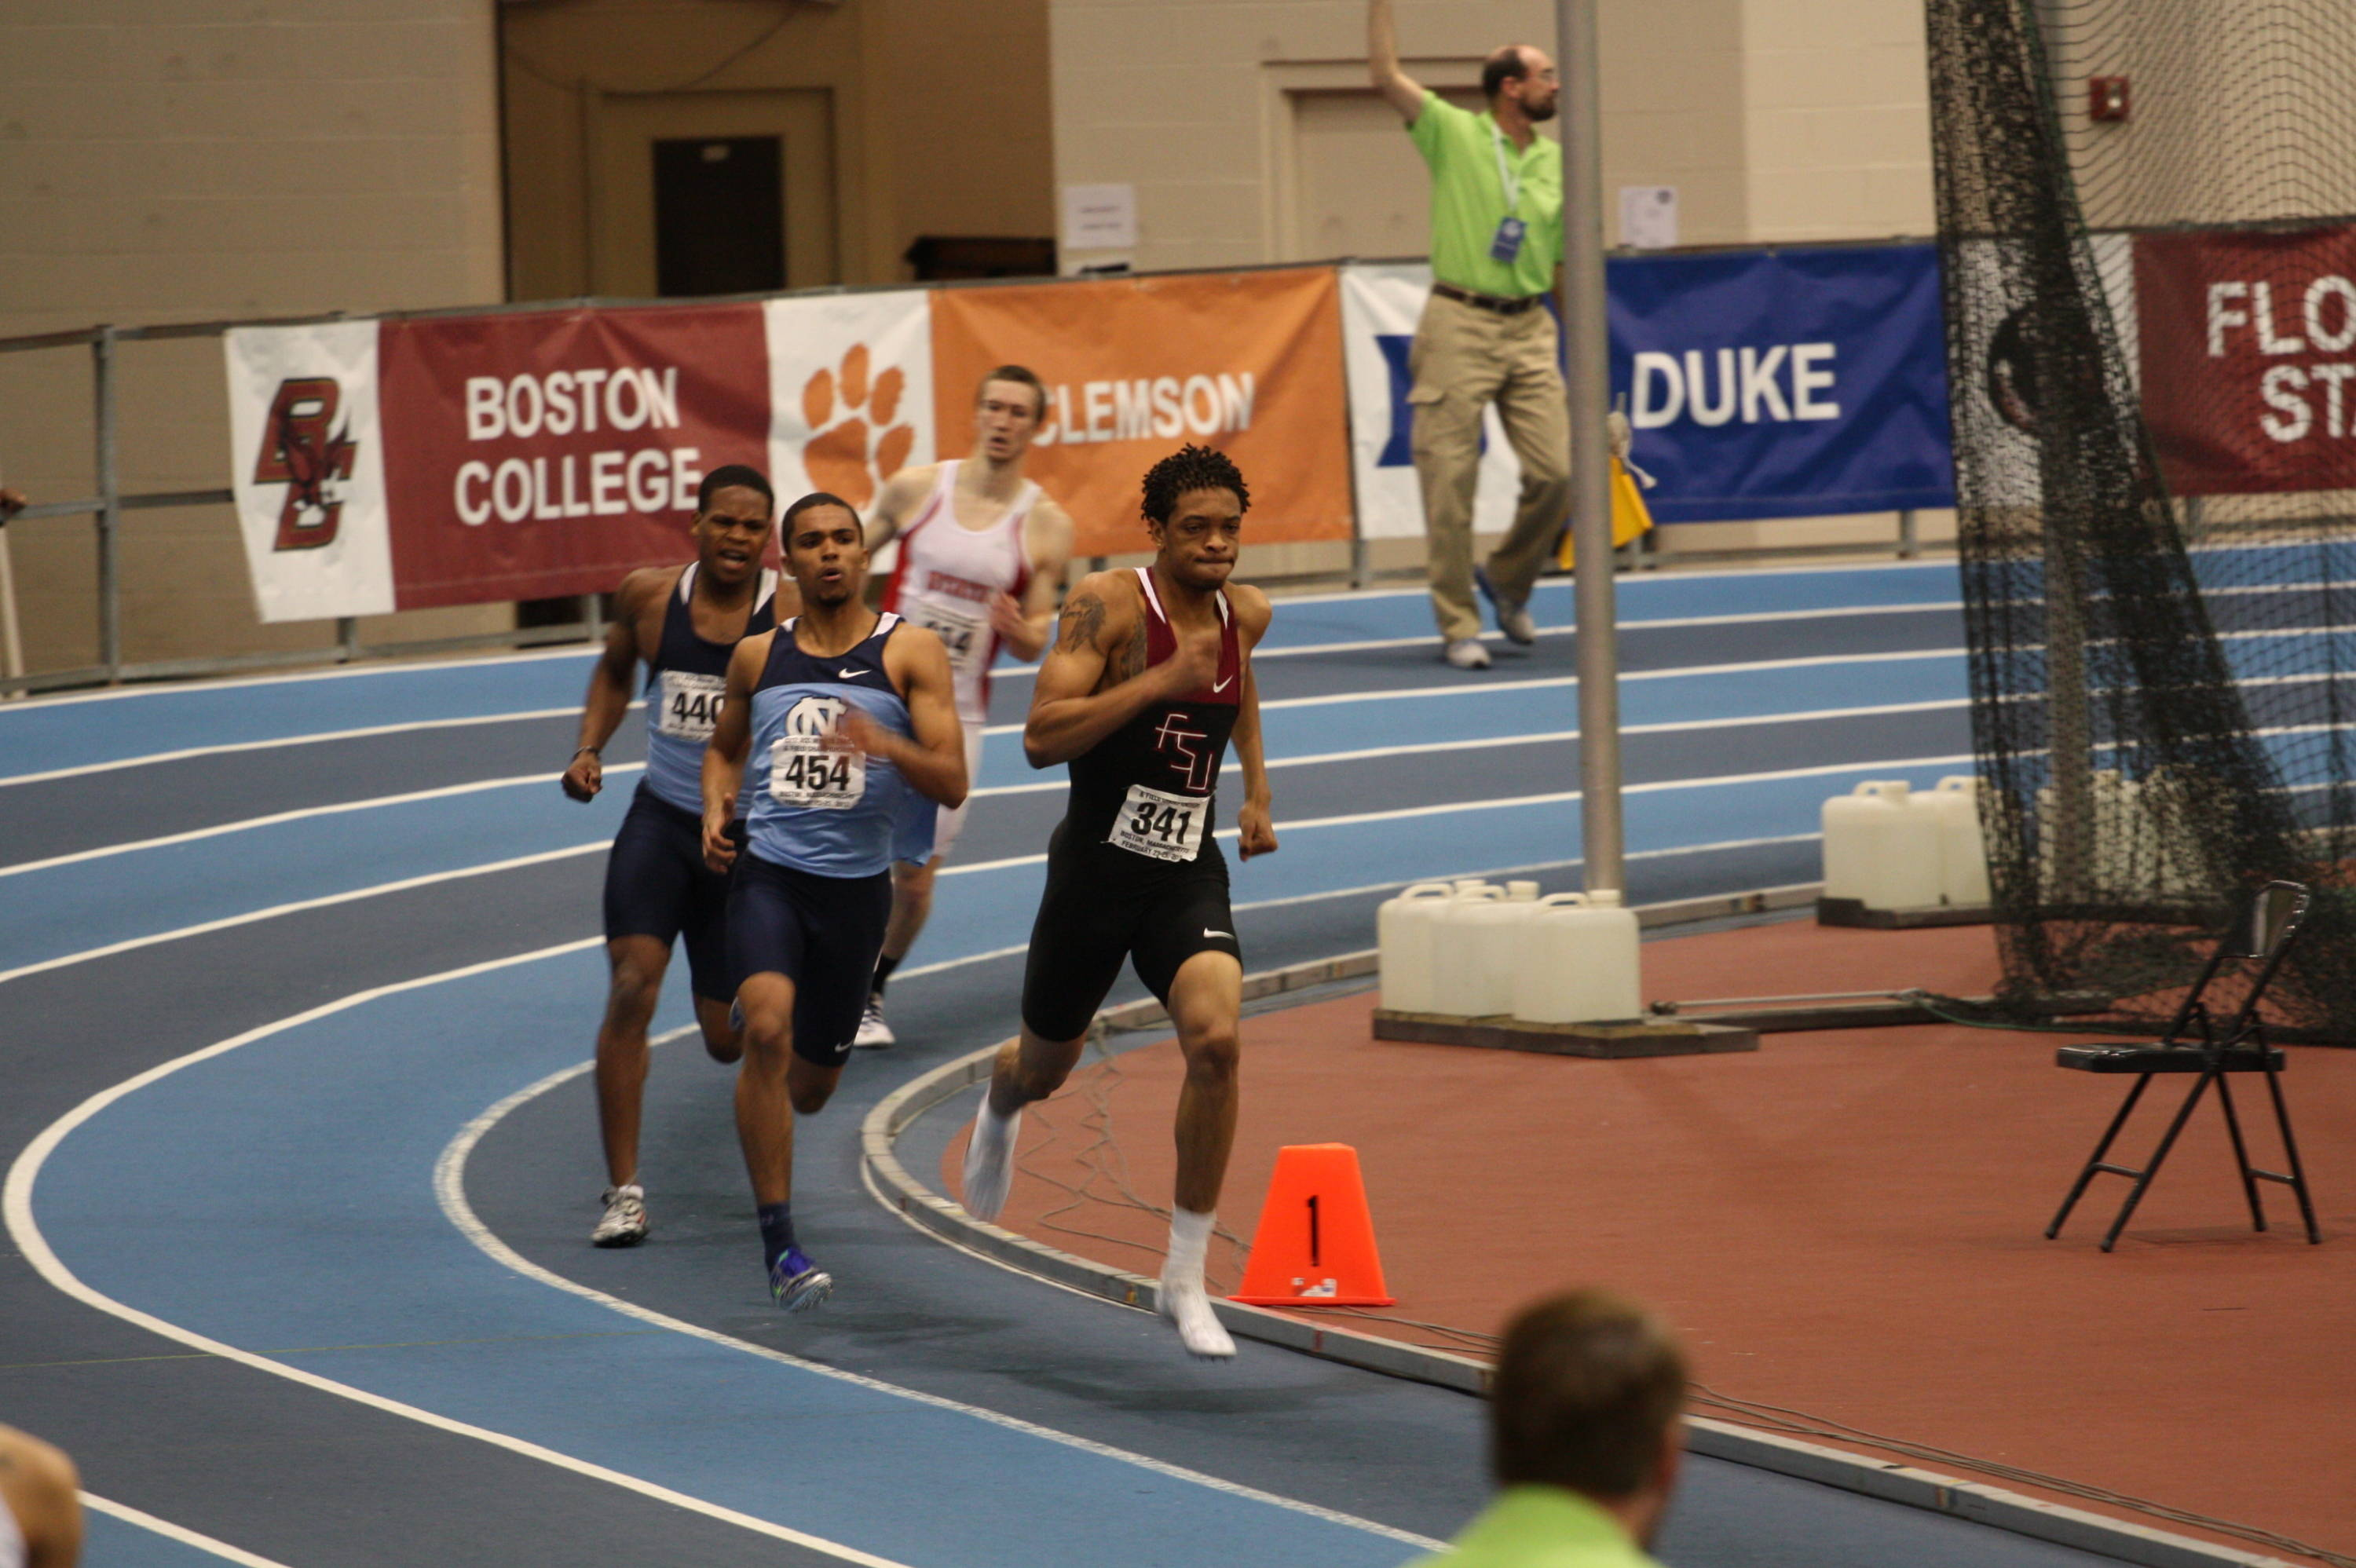 Freshman Stephen Newbold pulls away off the final turn for his first ACC title in the 400m dash.